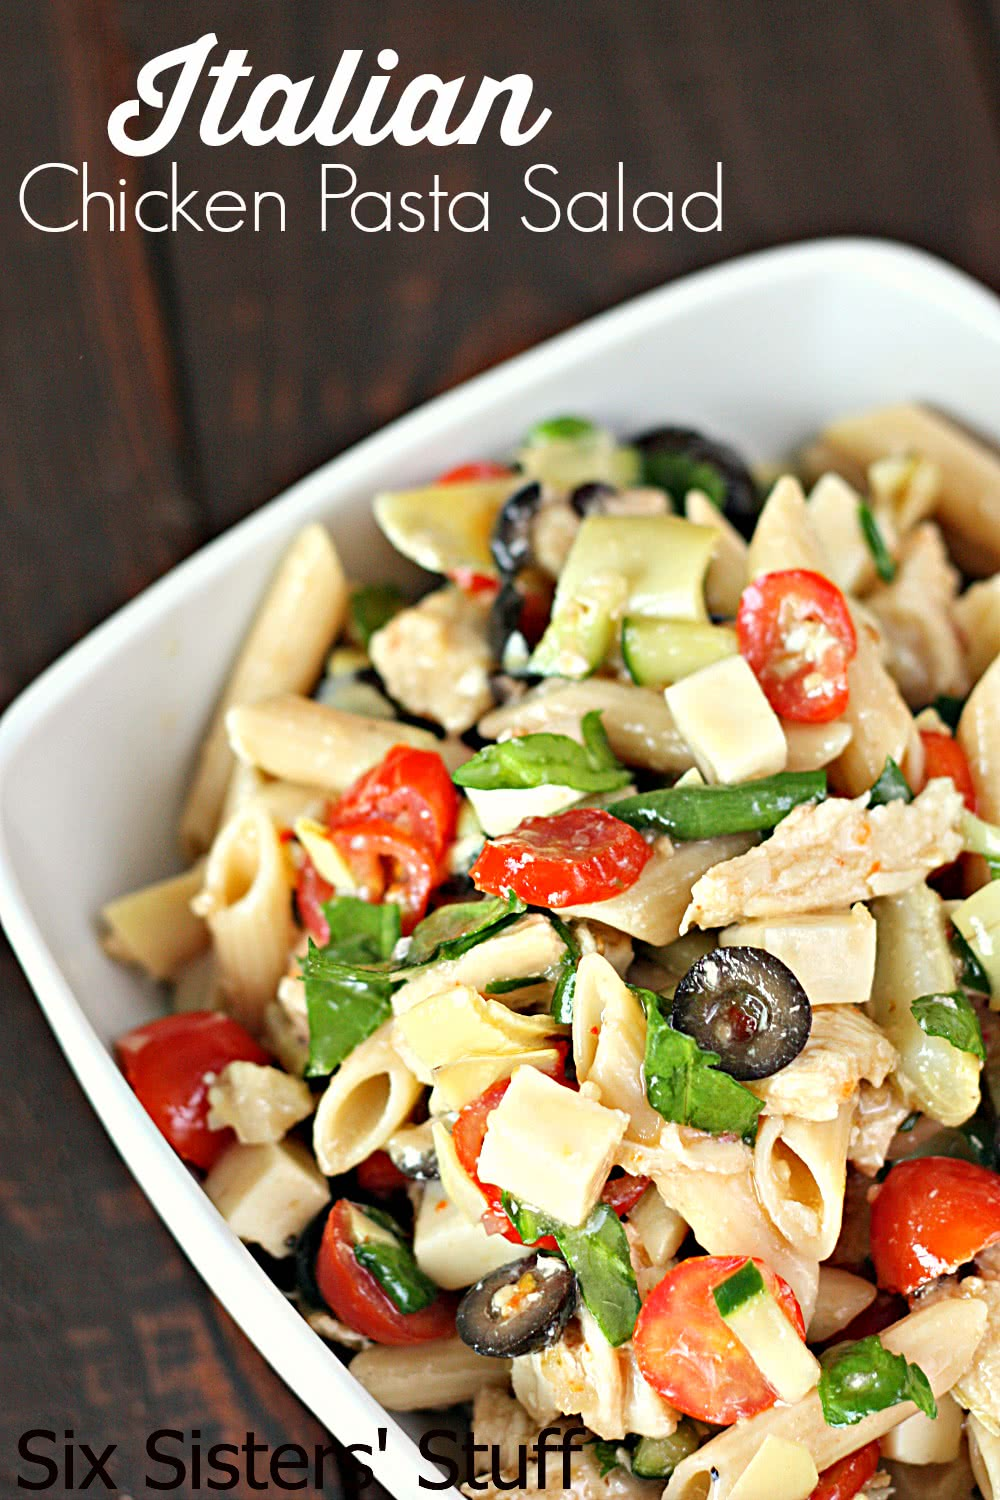 Italian Chicken Pasta Salad Recipe